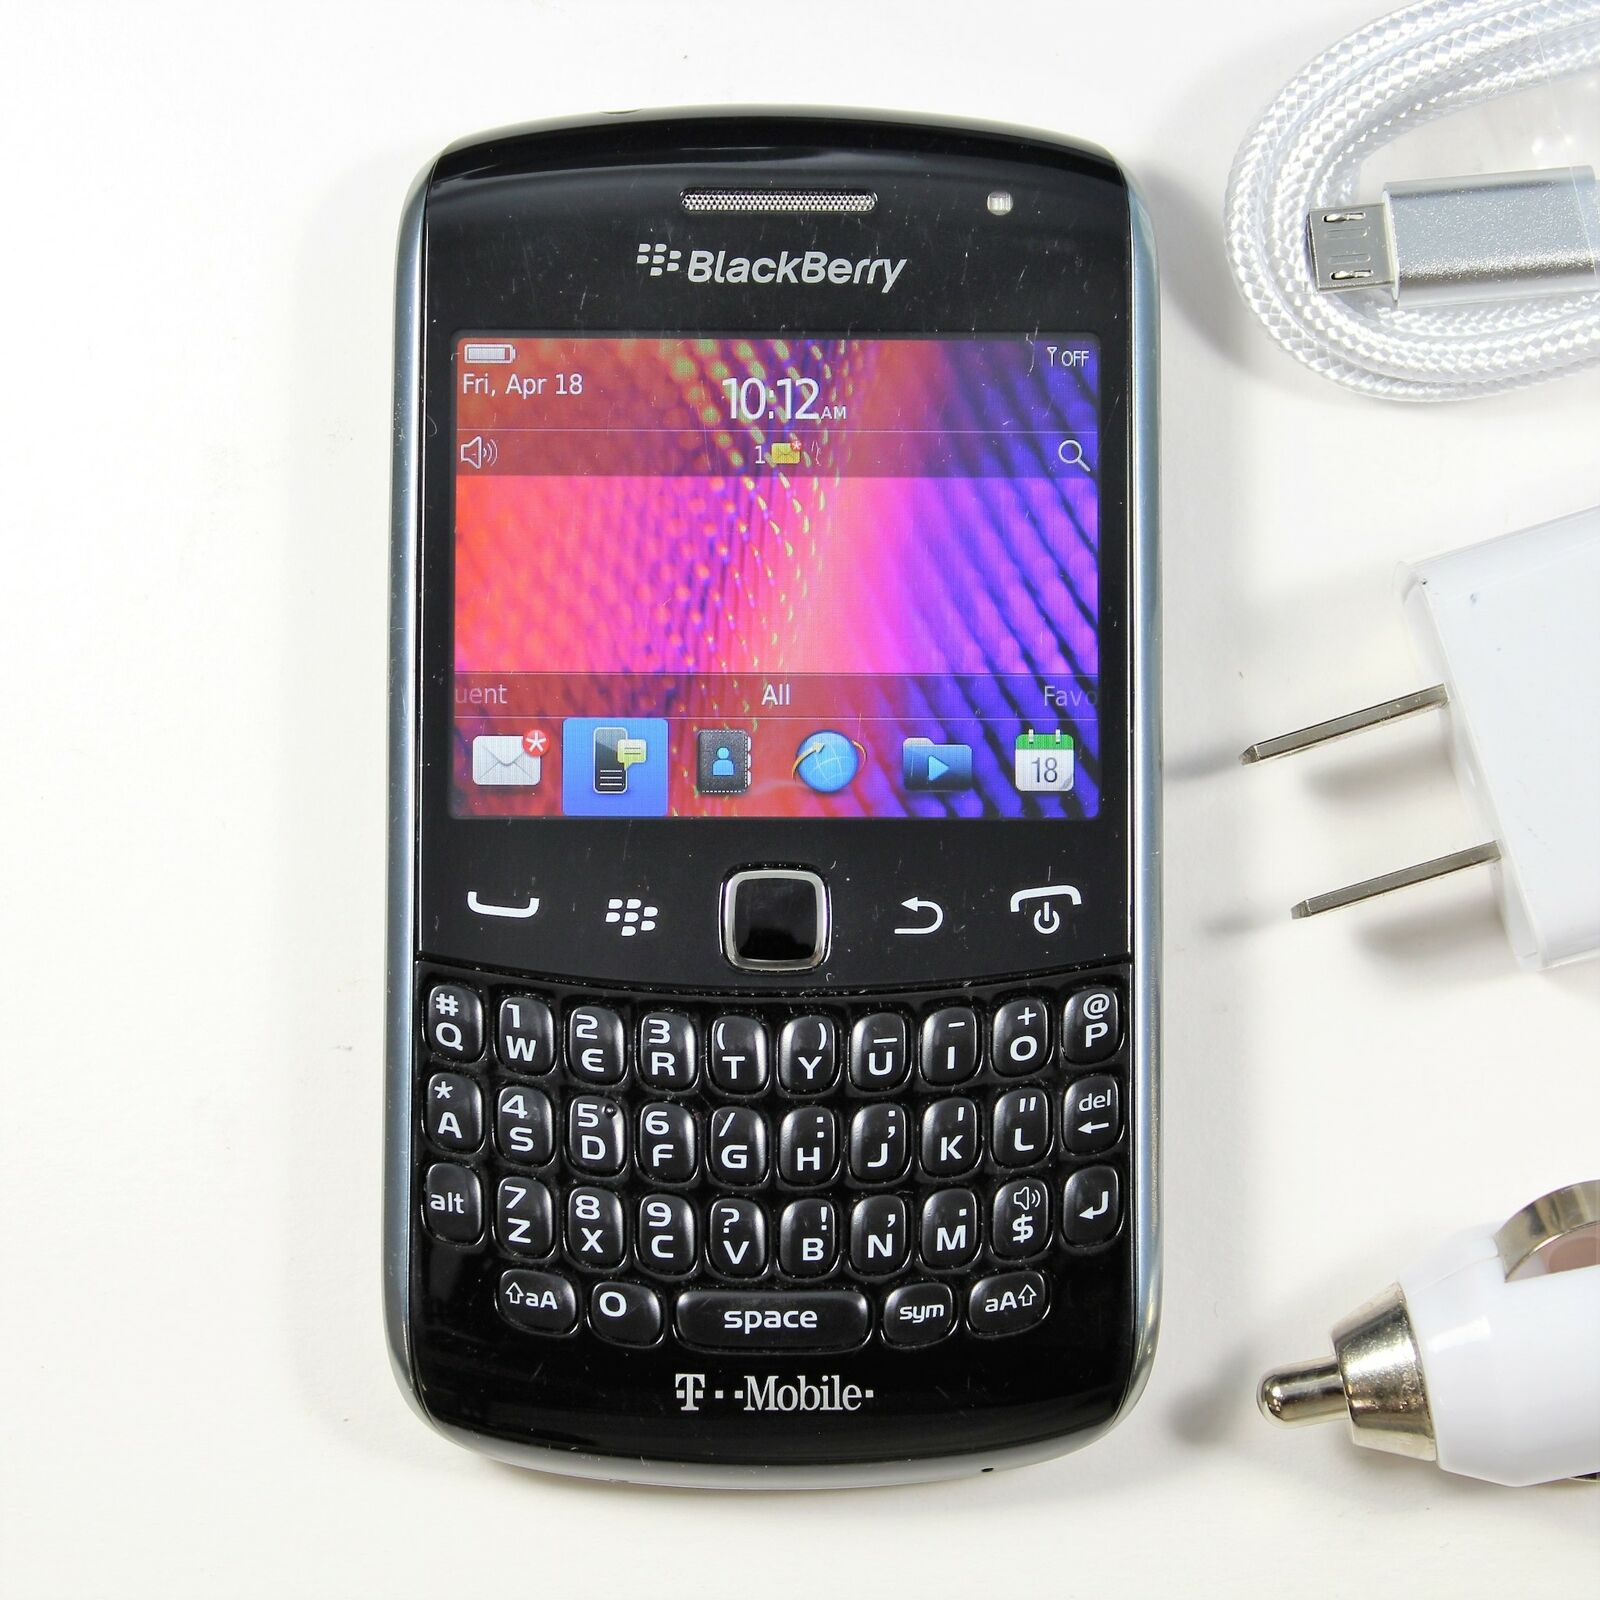 BlackBerry Curve 9360 (T-Mobile) 3G QWERTY Phone - Fast Ship